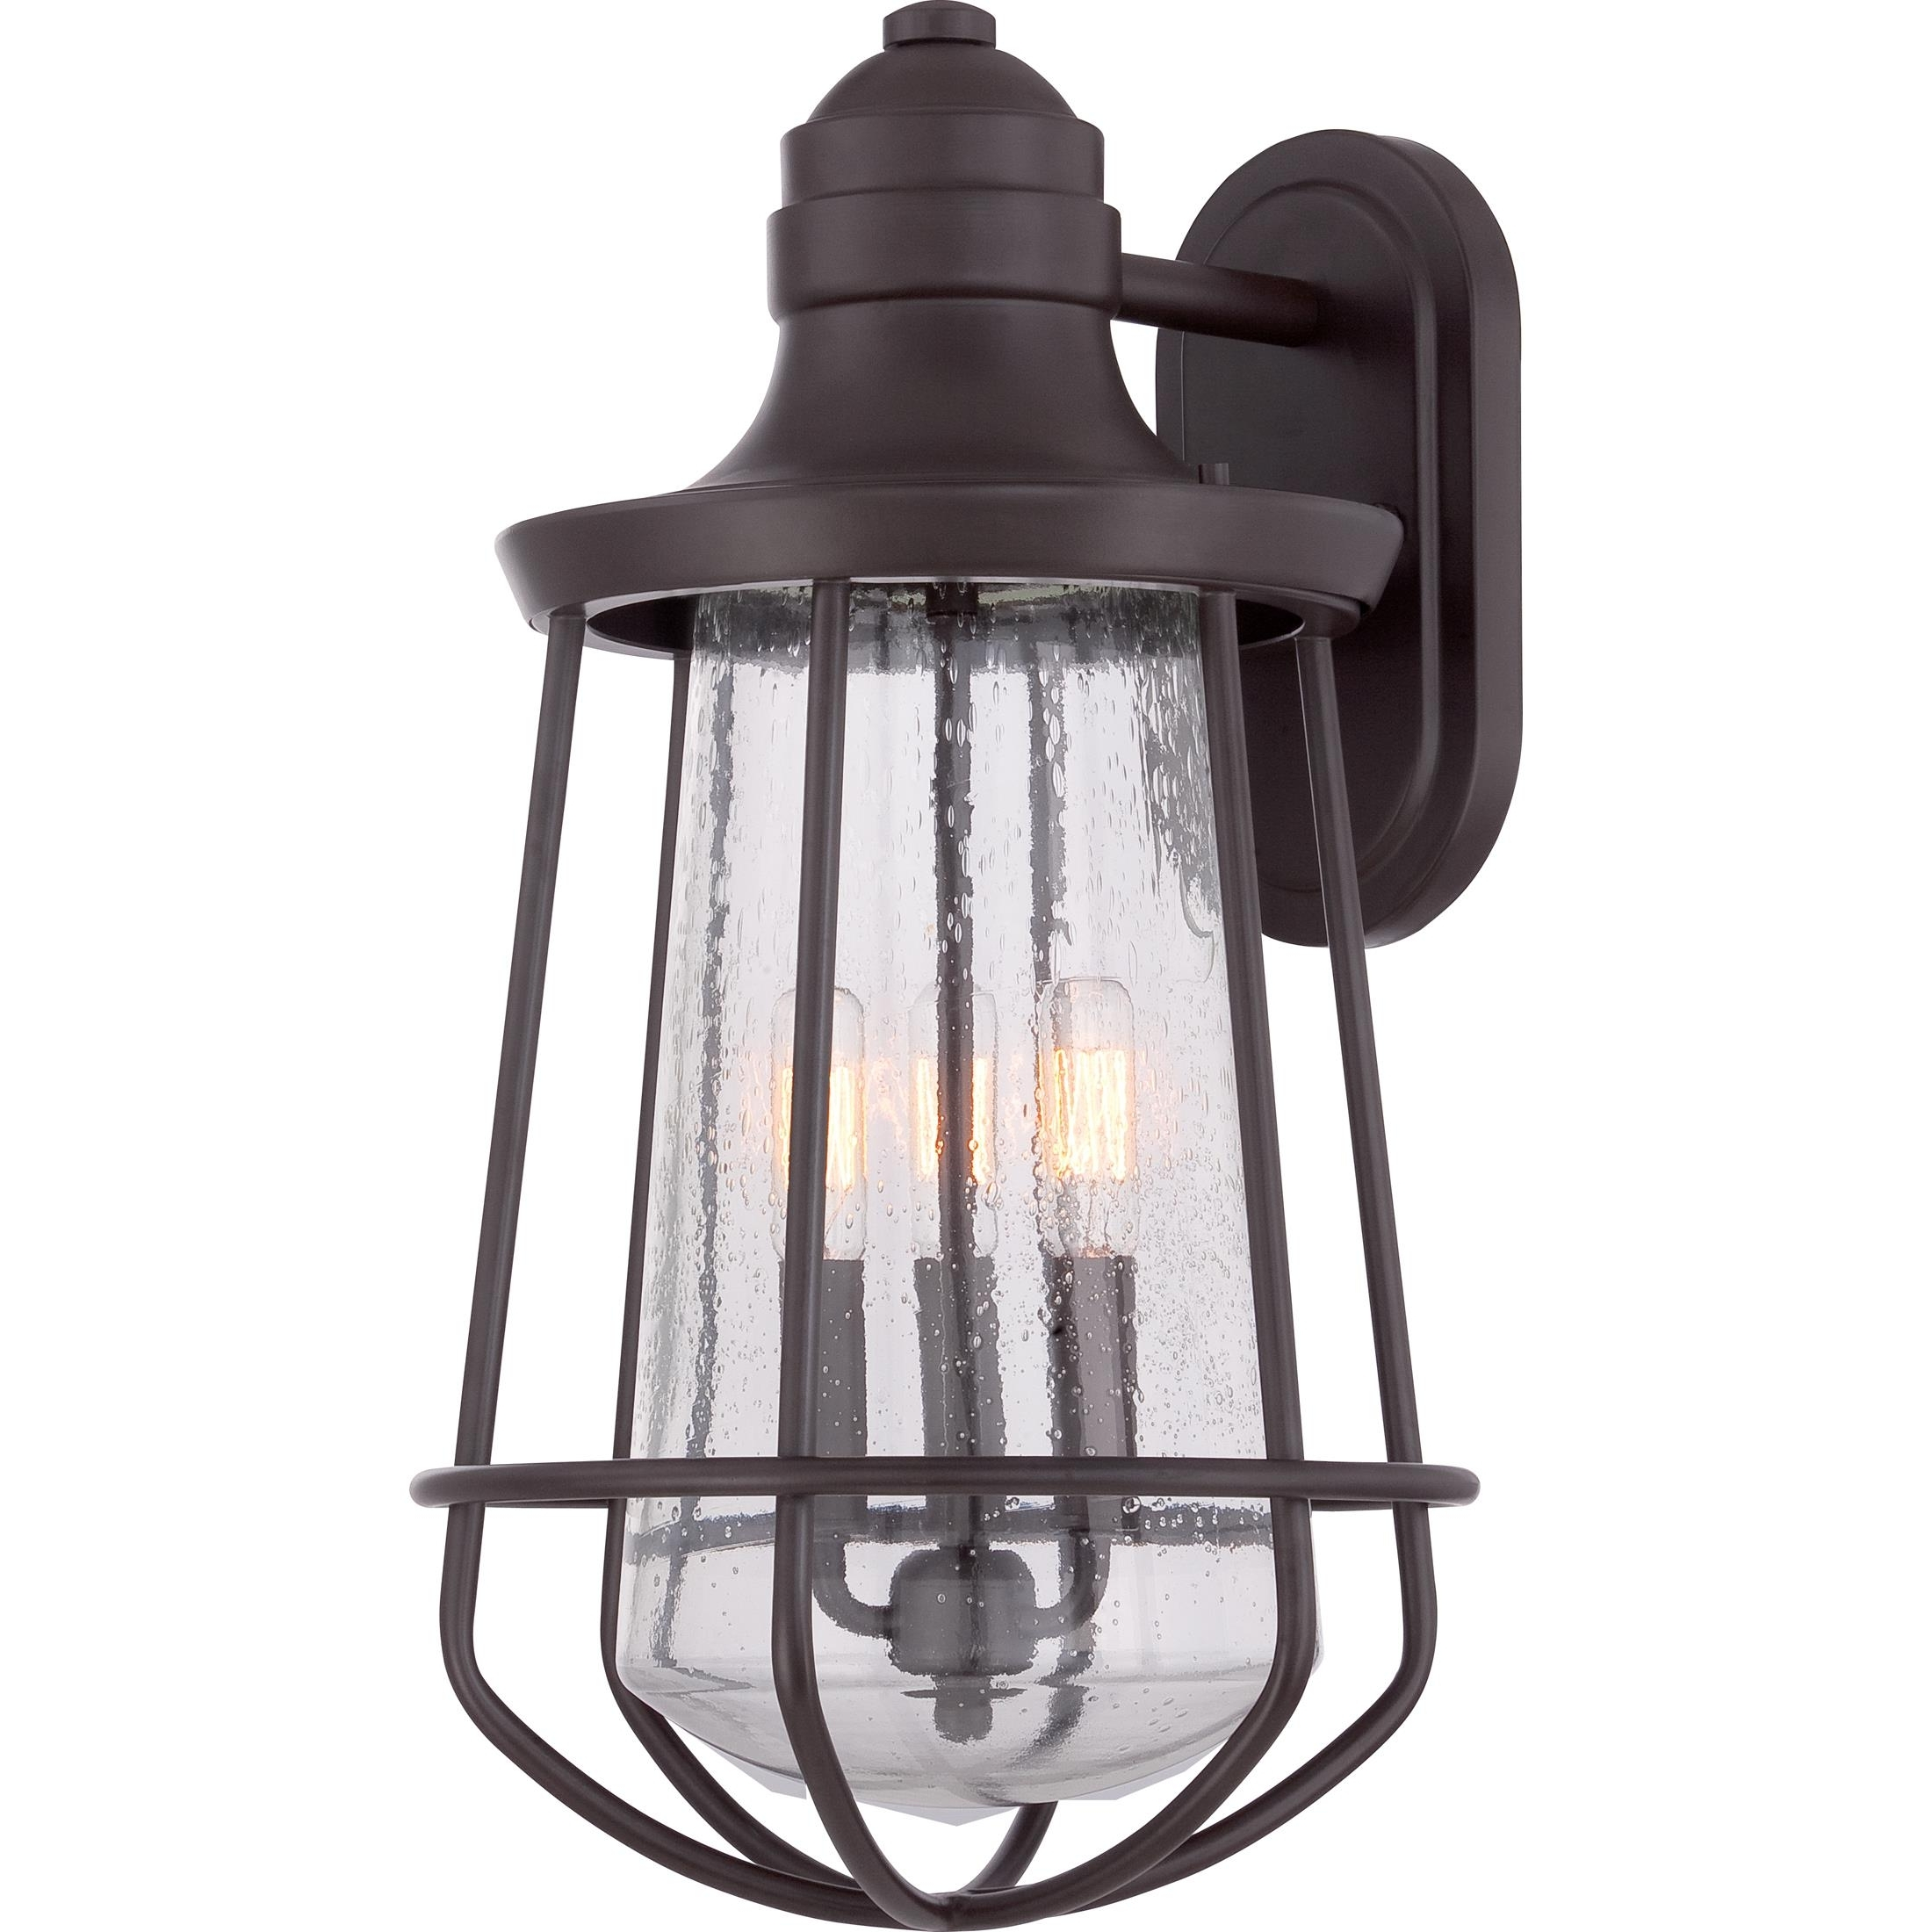 Widely Used Quoizel Lighting Mre8410wt Shipped Direct For Quoizel Outdoor Lanterns (View 6 of 20)